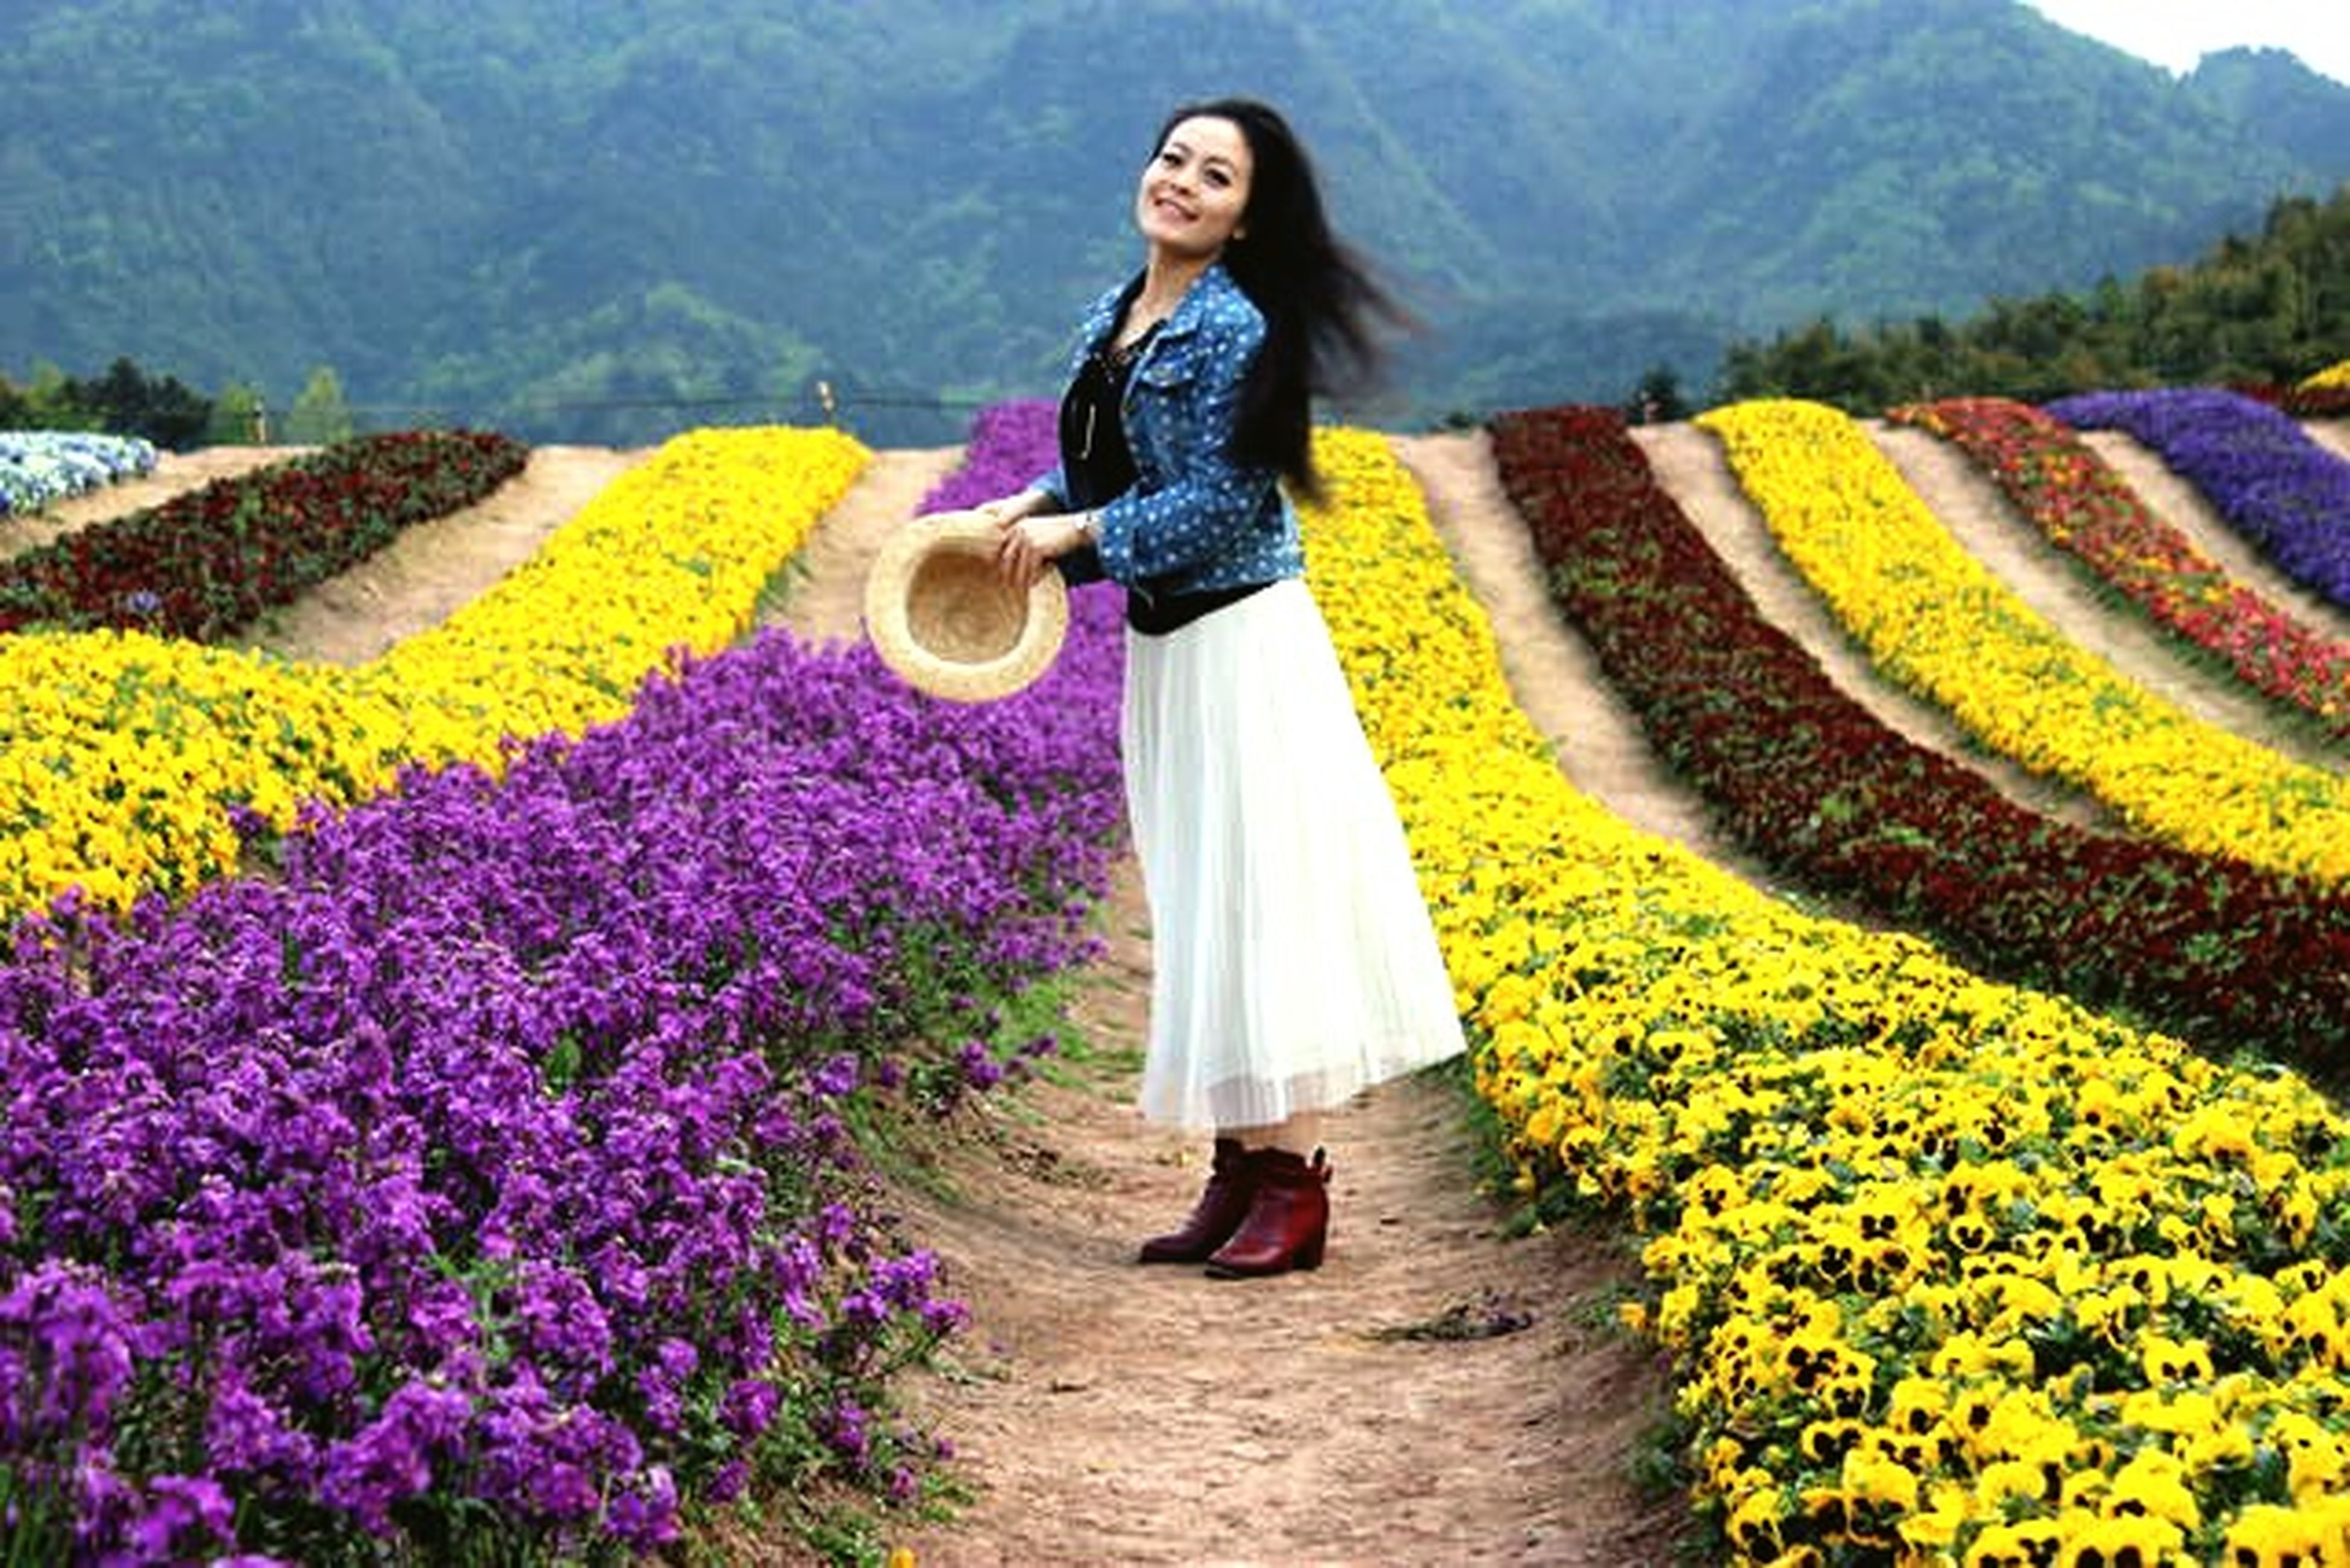 lifestyles, casual clothing, flower, leisure activity, young adult, beauty in nature, mountain, landscape, young women, growth, nature, full length, tranquil scene, field, standing, tranquility, person, scenics